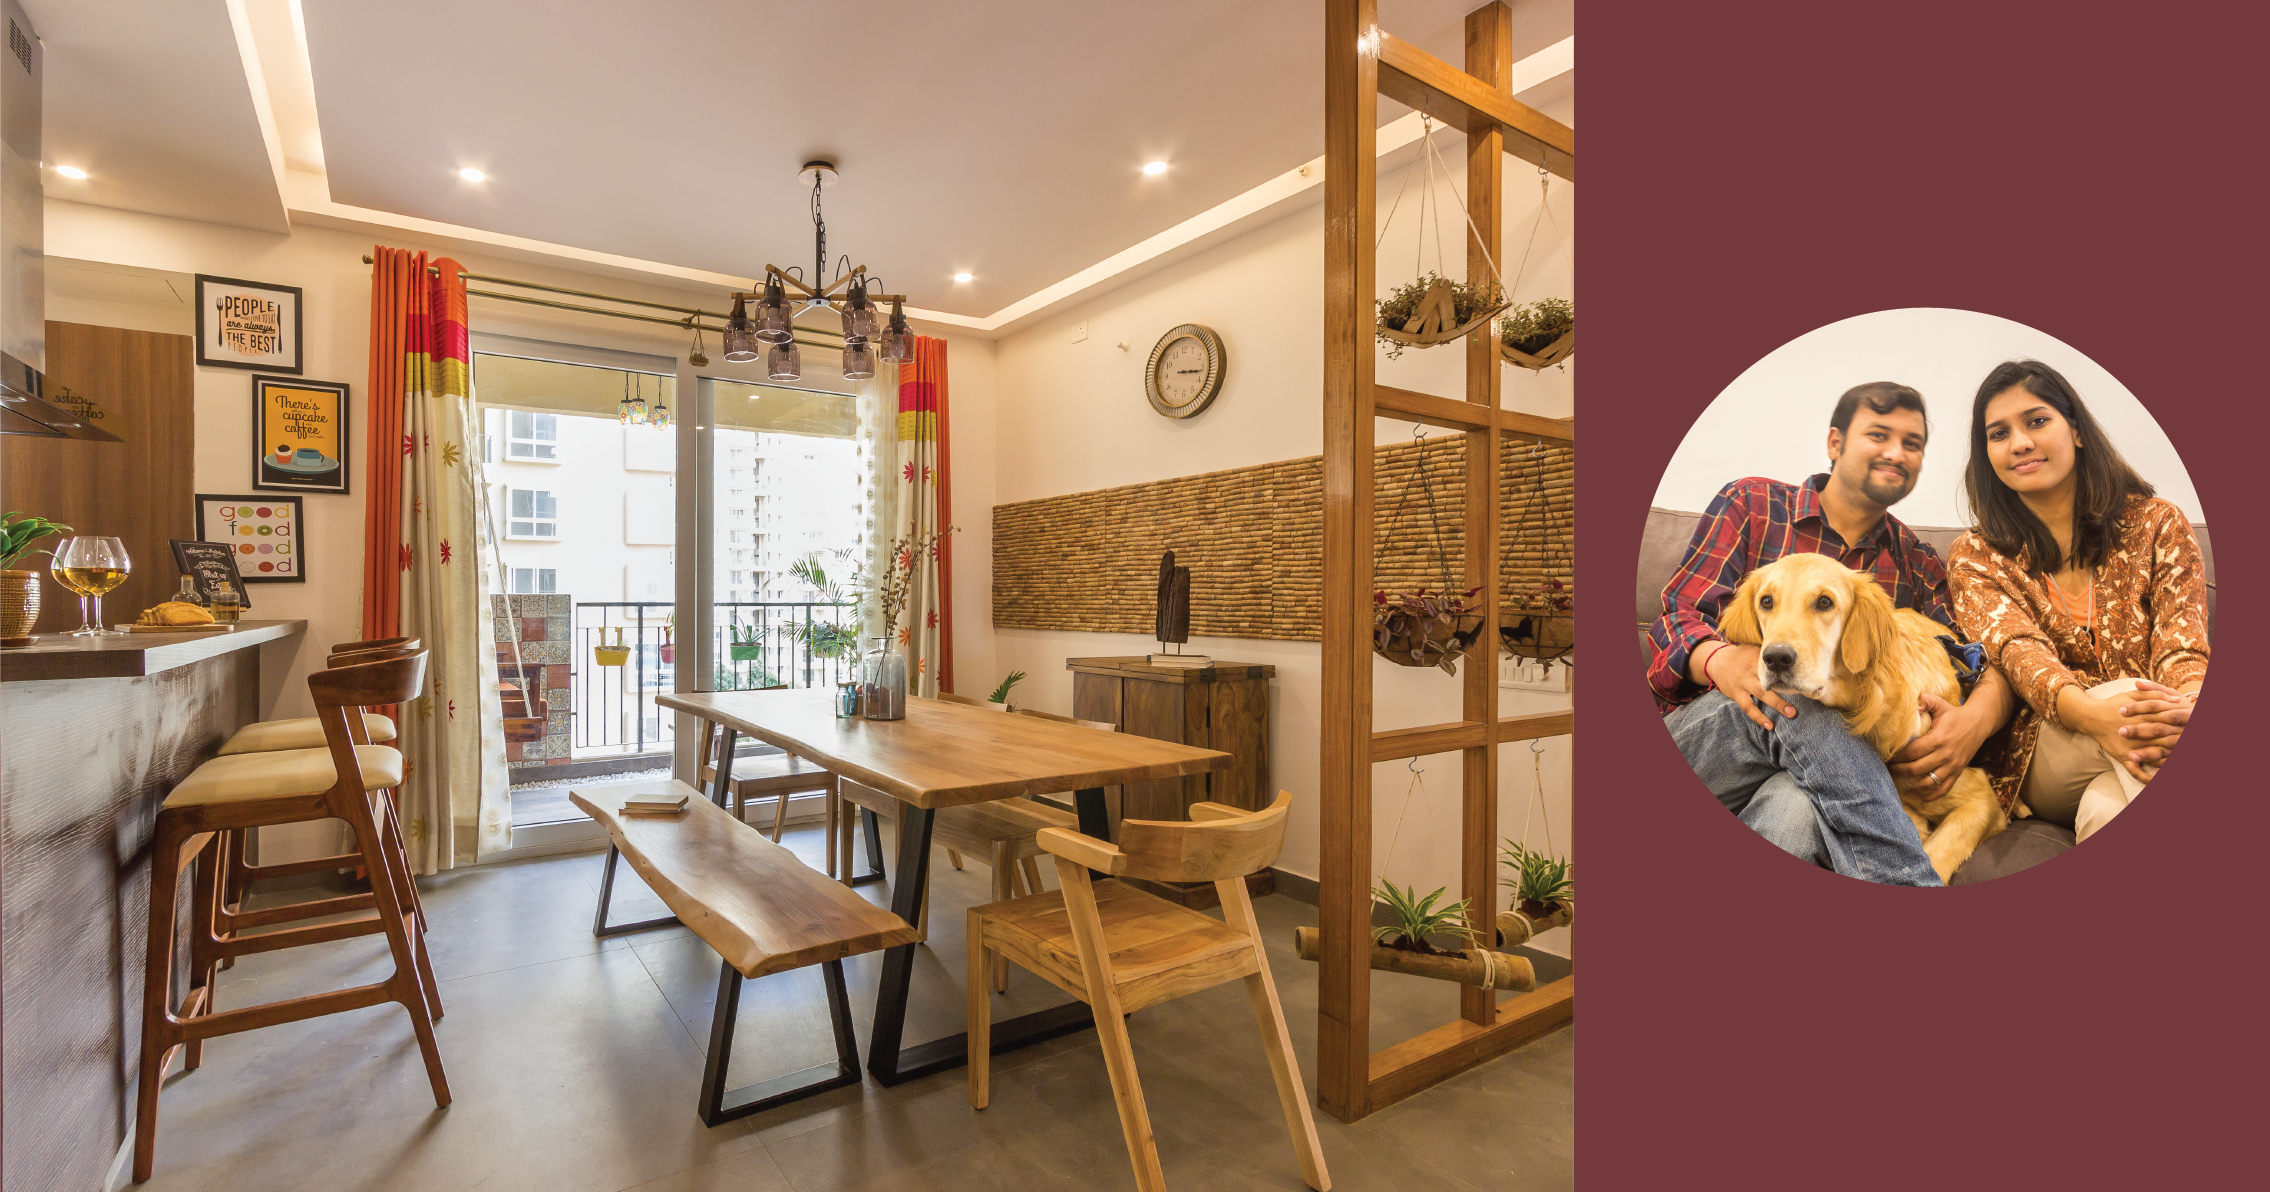 Video Tour: How to Design the Perfect Home to Host Parties?